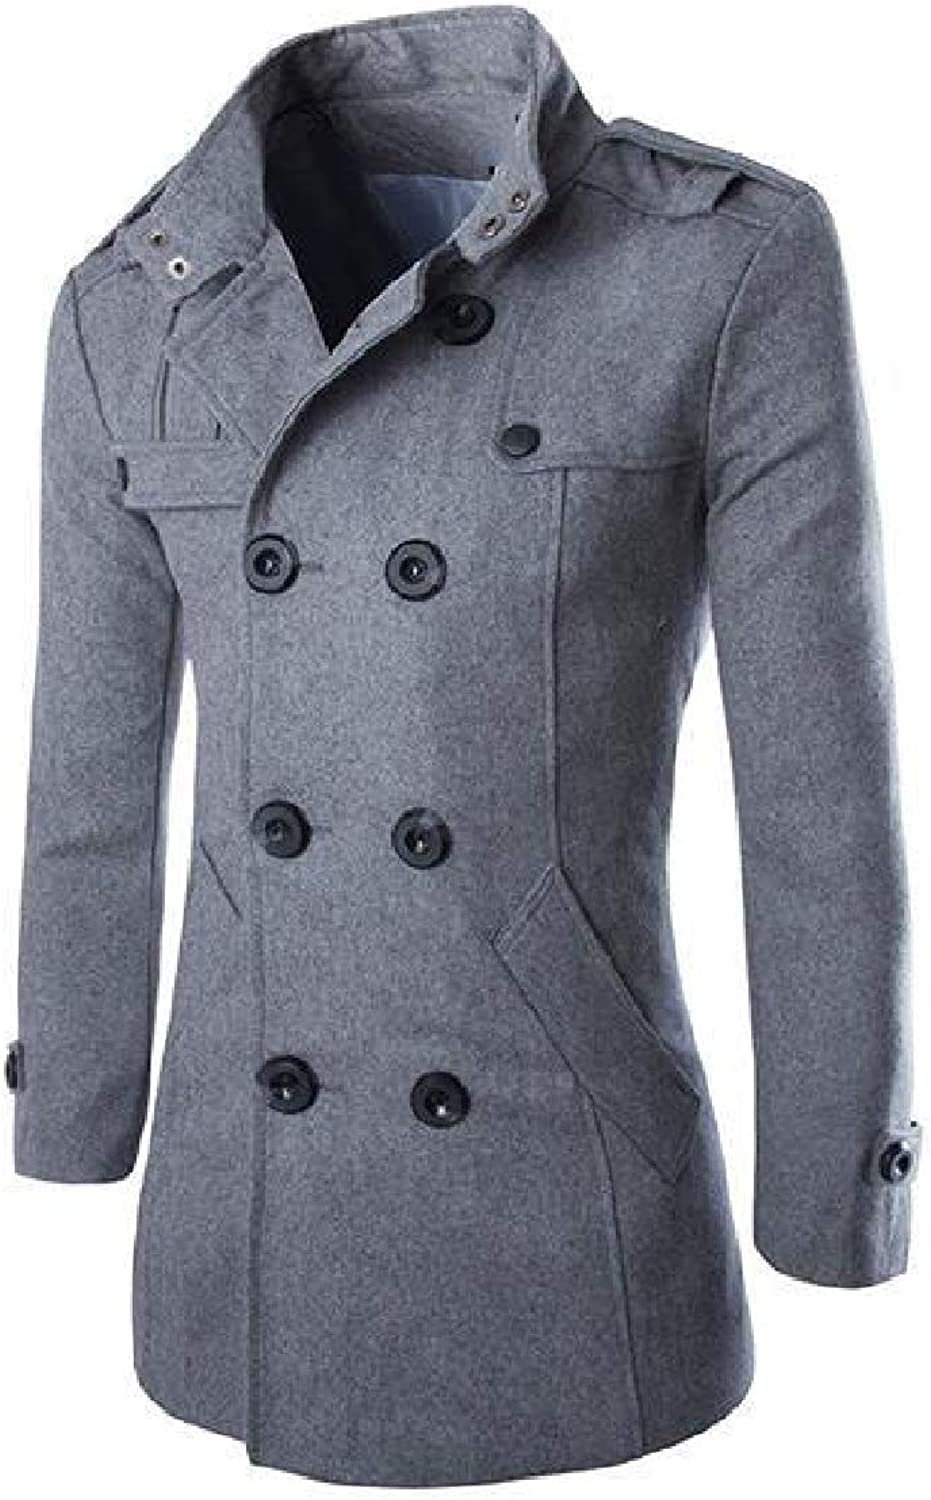 DressU Men's Stand Collar Double-Breasted Wool Blend Regular-Fit Trench Coat Jacket Clothes